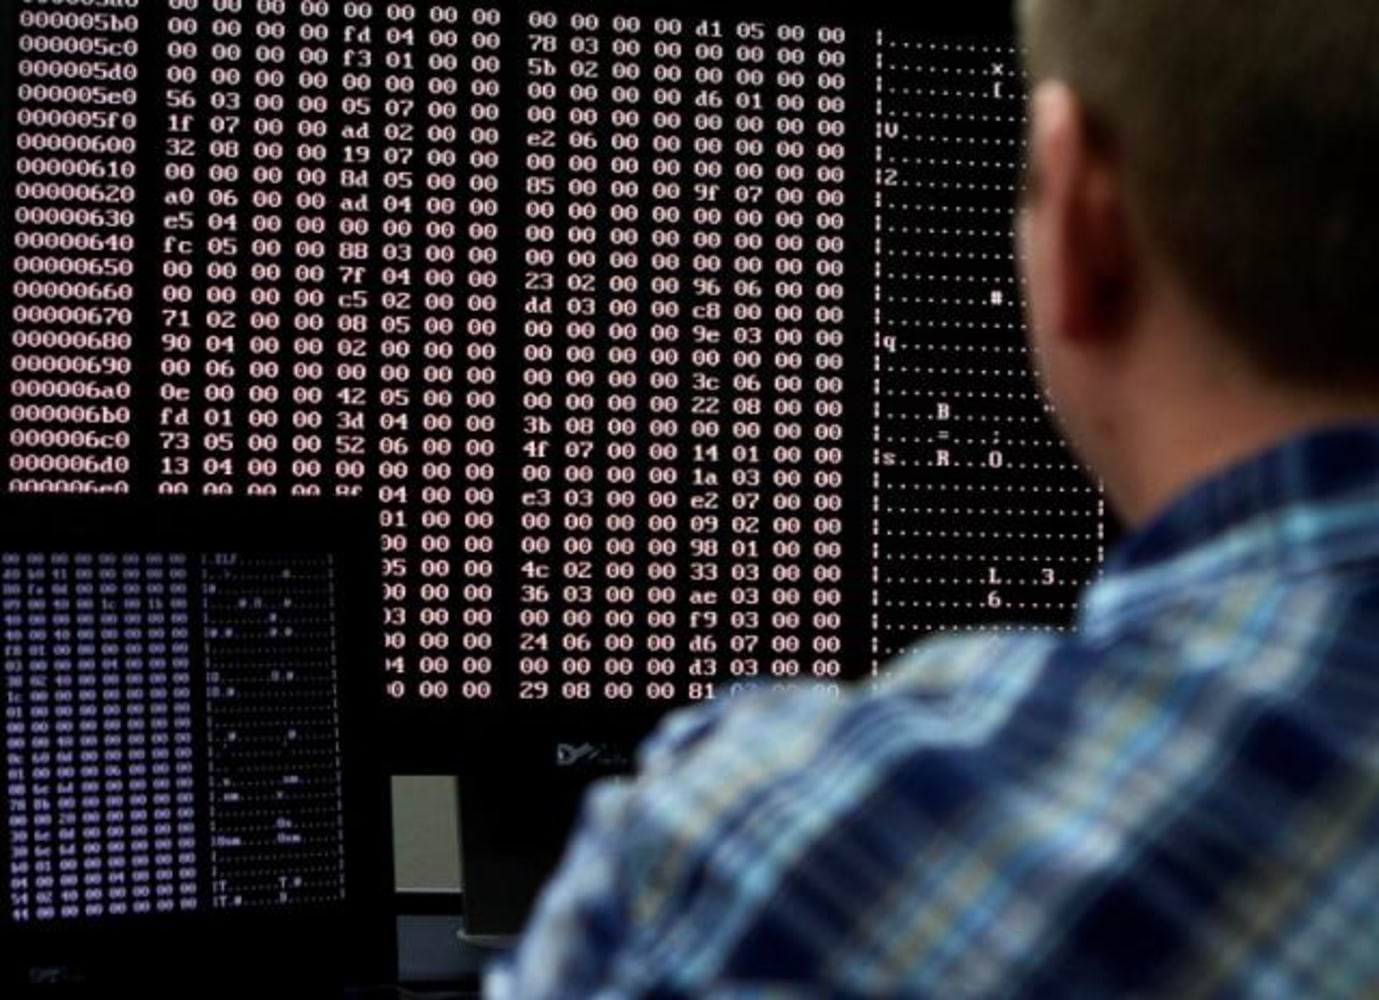 U.S. Government 'Worse Than All Major Industries' on Cybersecurity